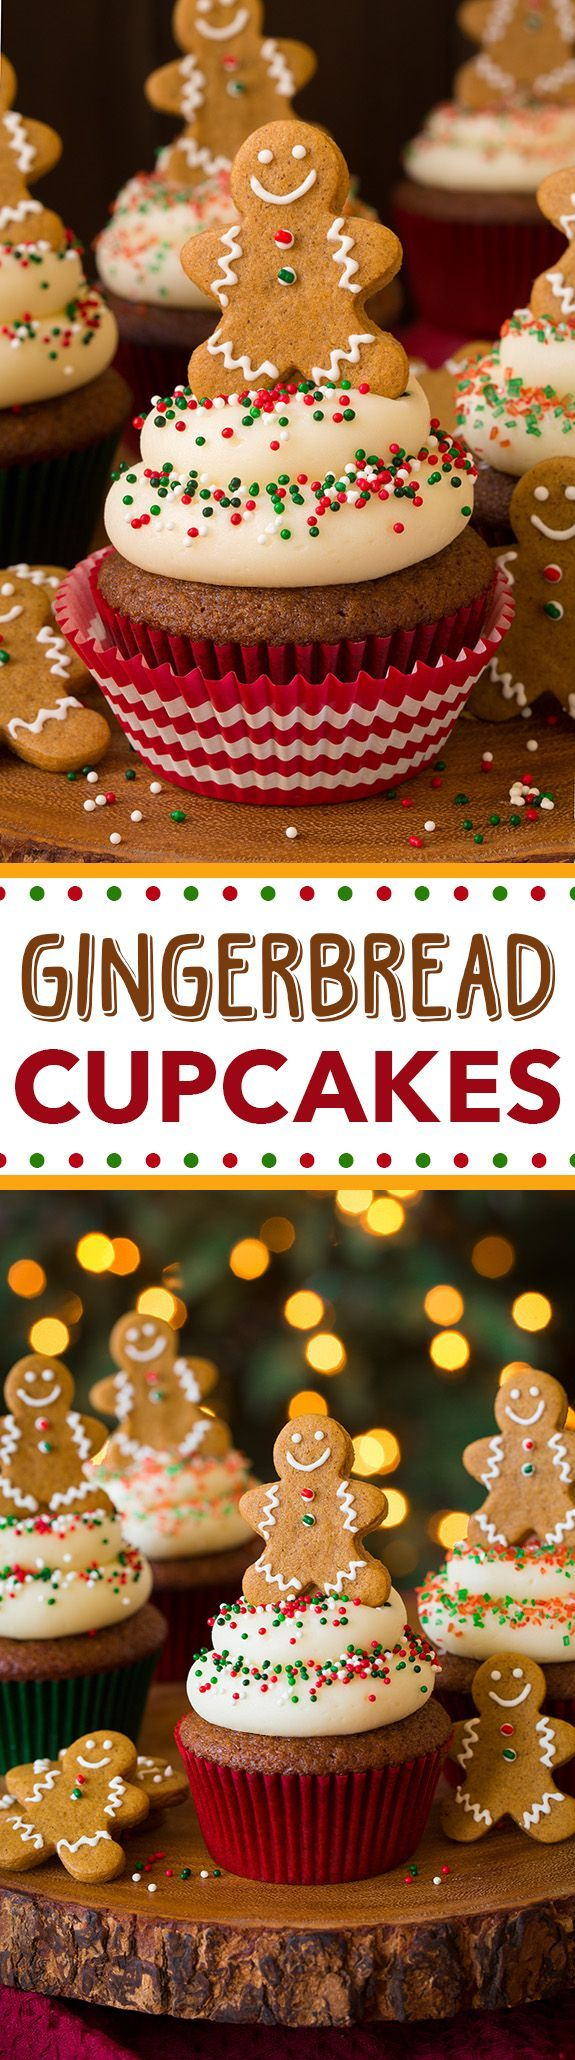 Gingerbread Cupcakes with Cream Cheese Frosting - such a fun cupcake for the…